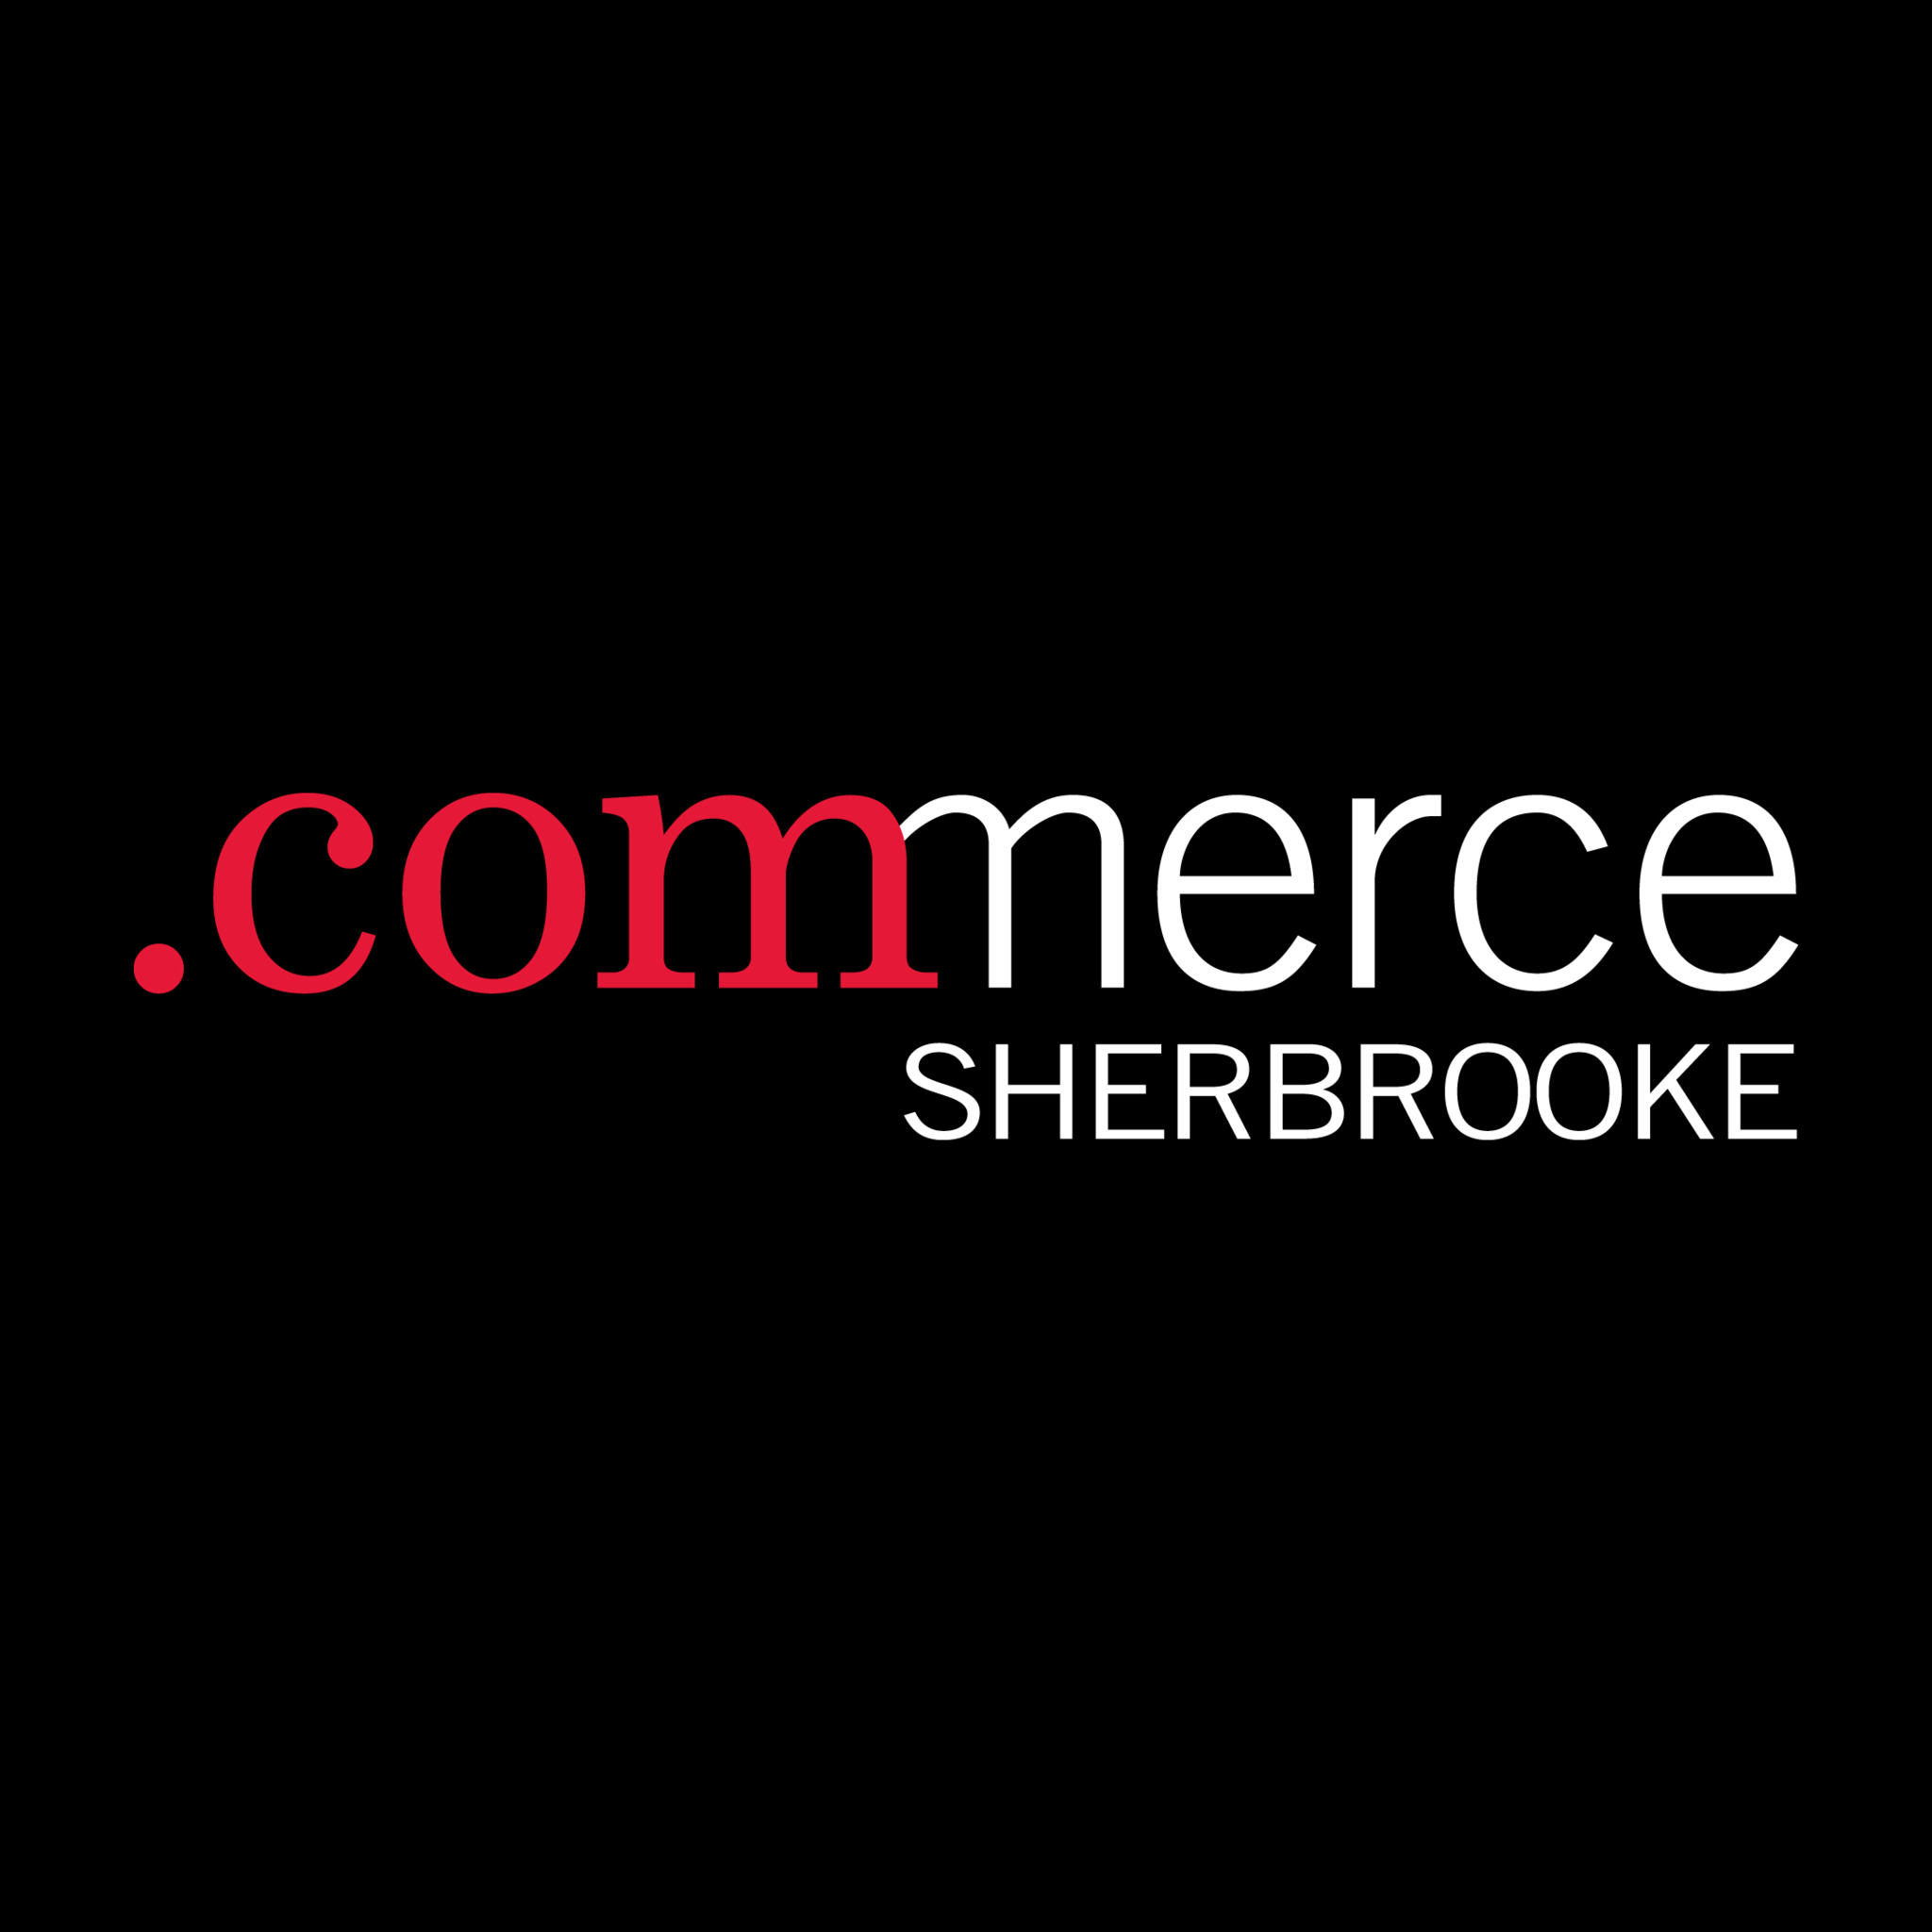 Commerce Sherbrooke à Sherbrooke: Commerce Sherbrooke * Develop * Analyze * Dynamize 819 822-6082 Business development